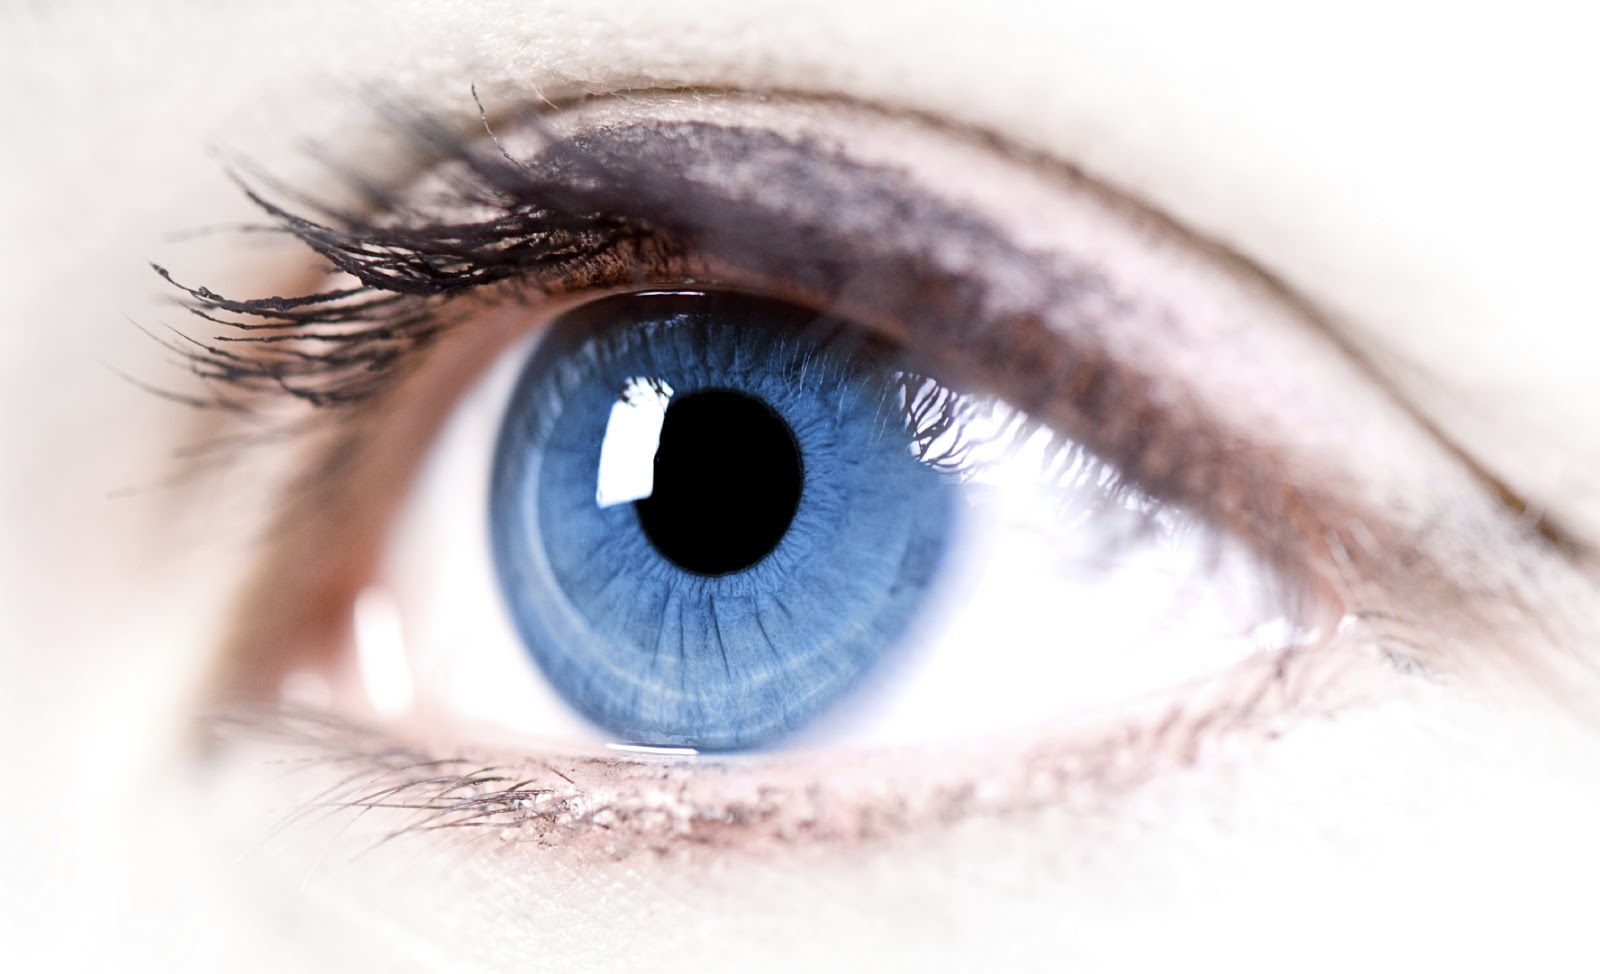 Science Of Vision How Do Our Eyes Enable Us To See